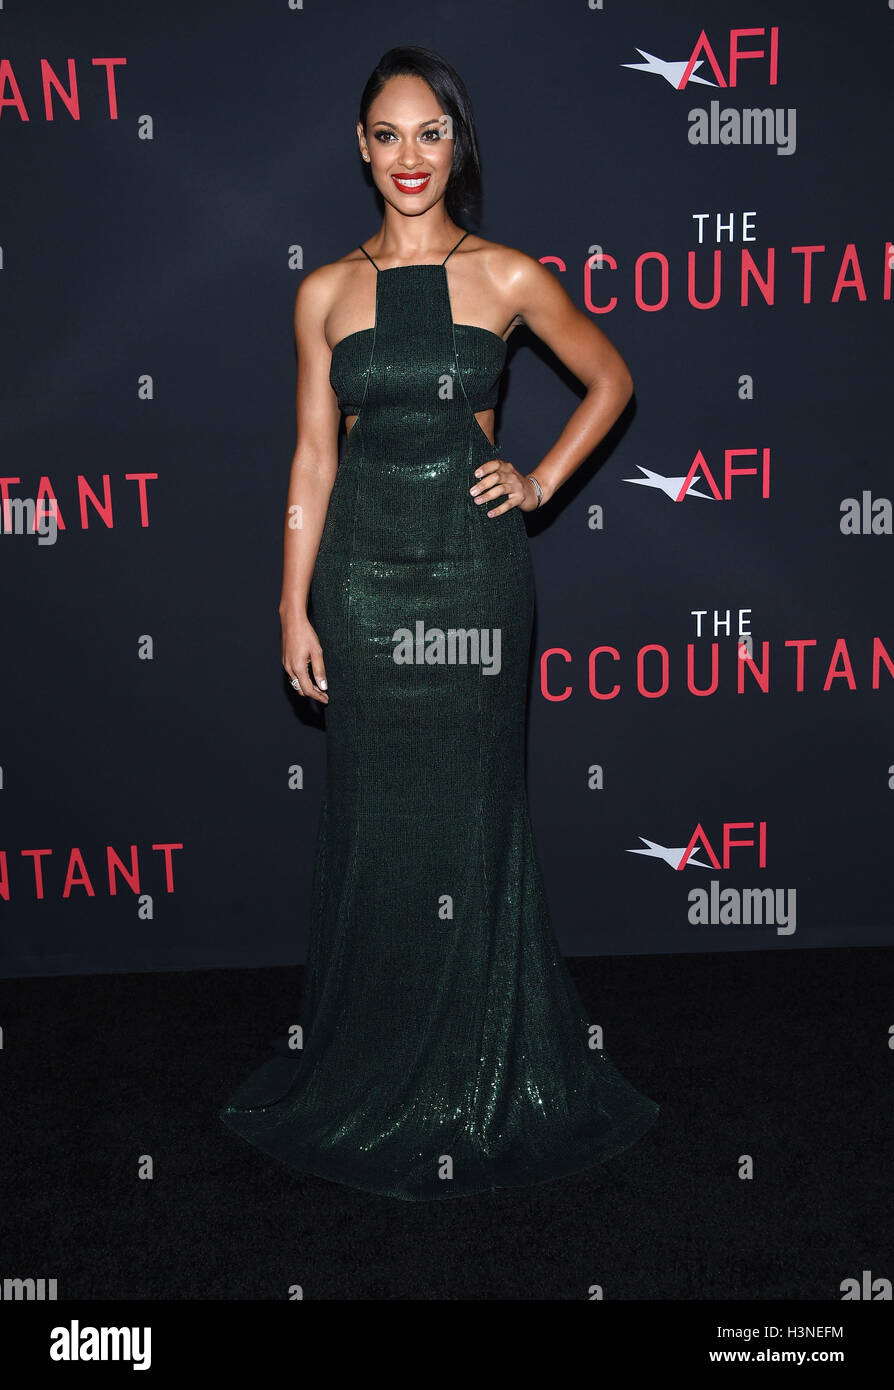 Hollywood, California, USA. 10th Oct, 2016. Cynthia Addai-Robinson arrives for the premiere of the film 'The Accountant' Stock Photo